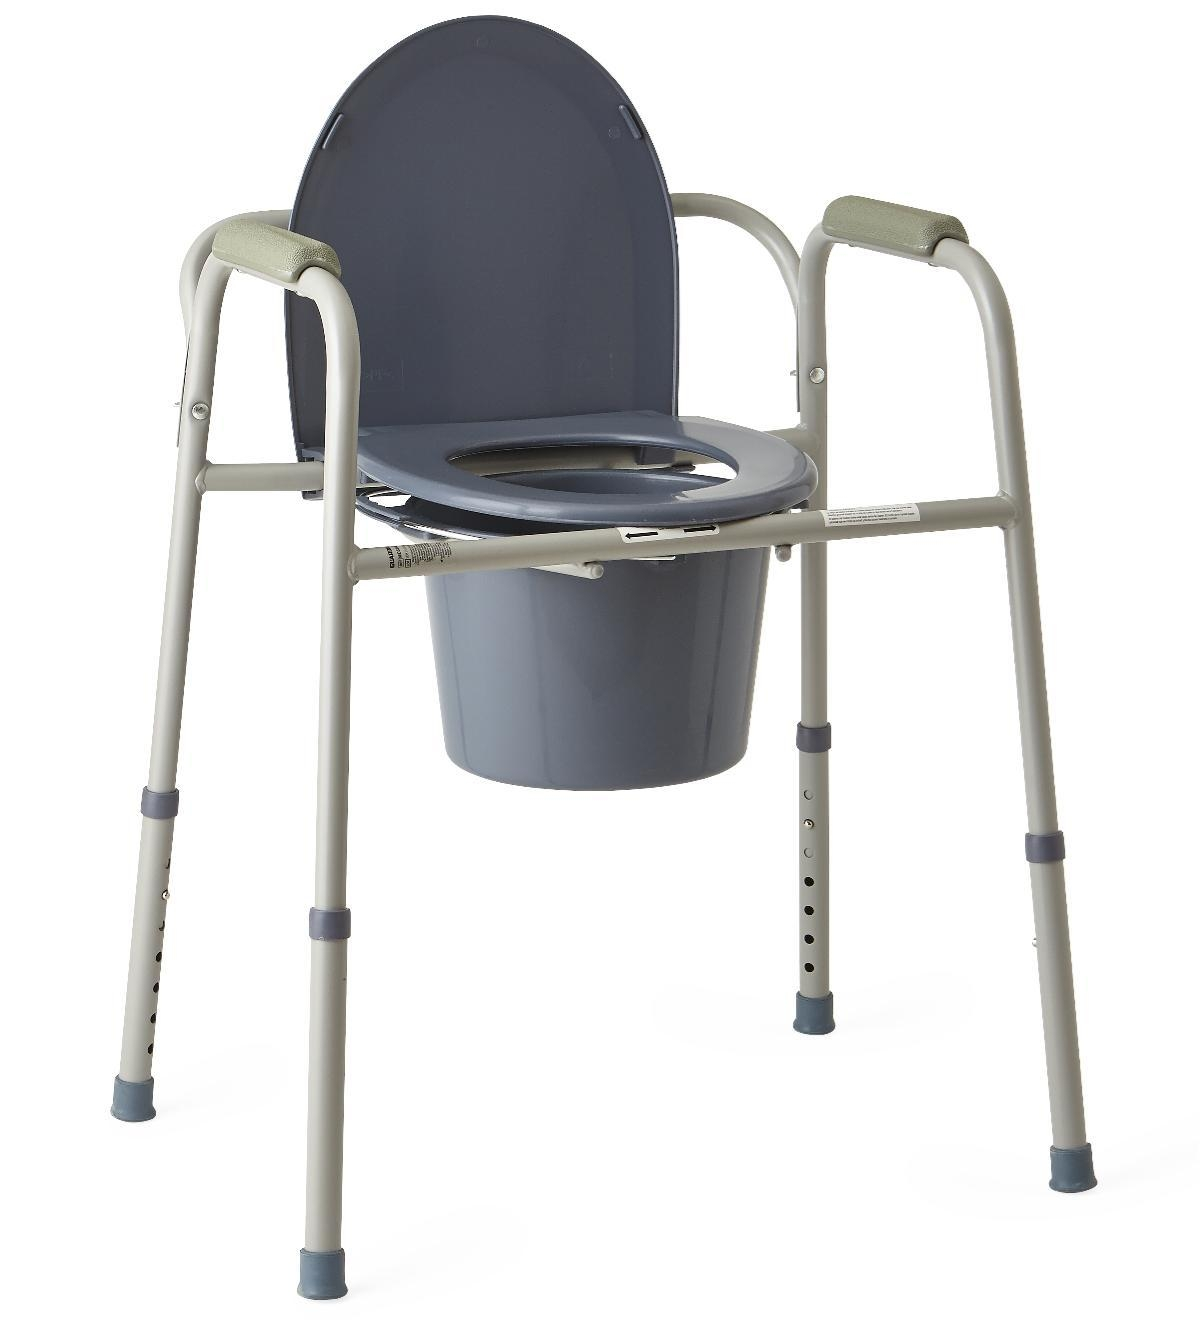 Equipment & Furnishings Bathroom Safety Commodes - Mds89664h - Commode 3-in-1 Steel MDS89664H